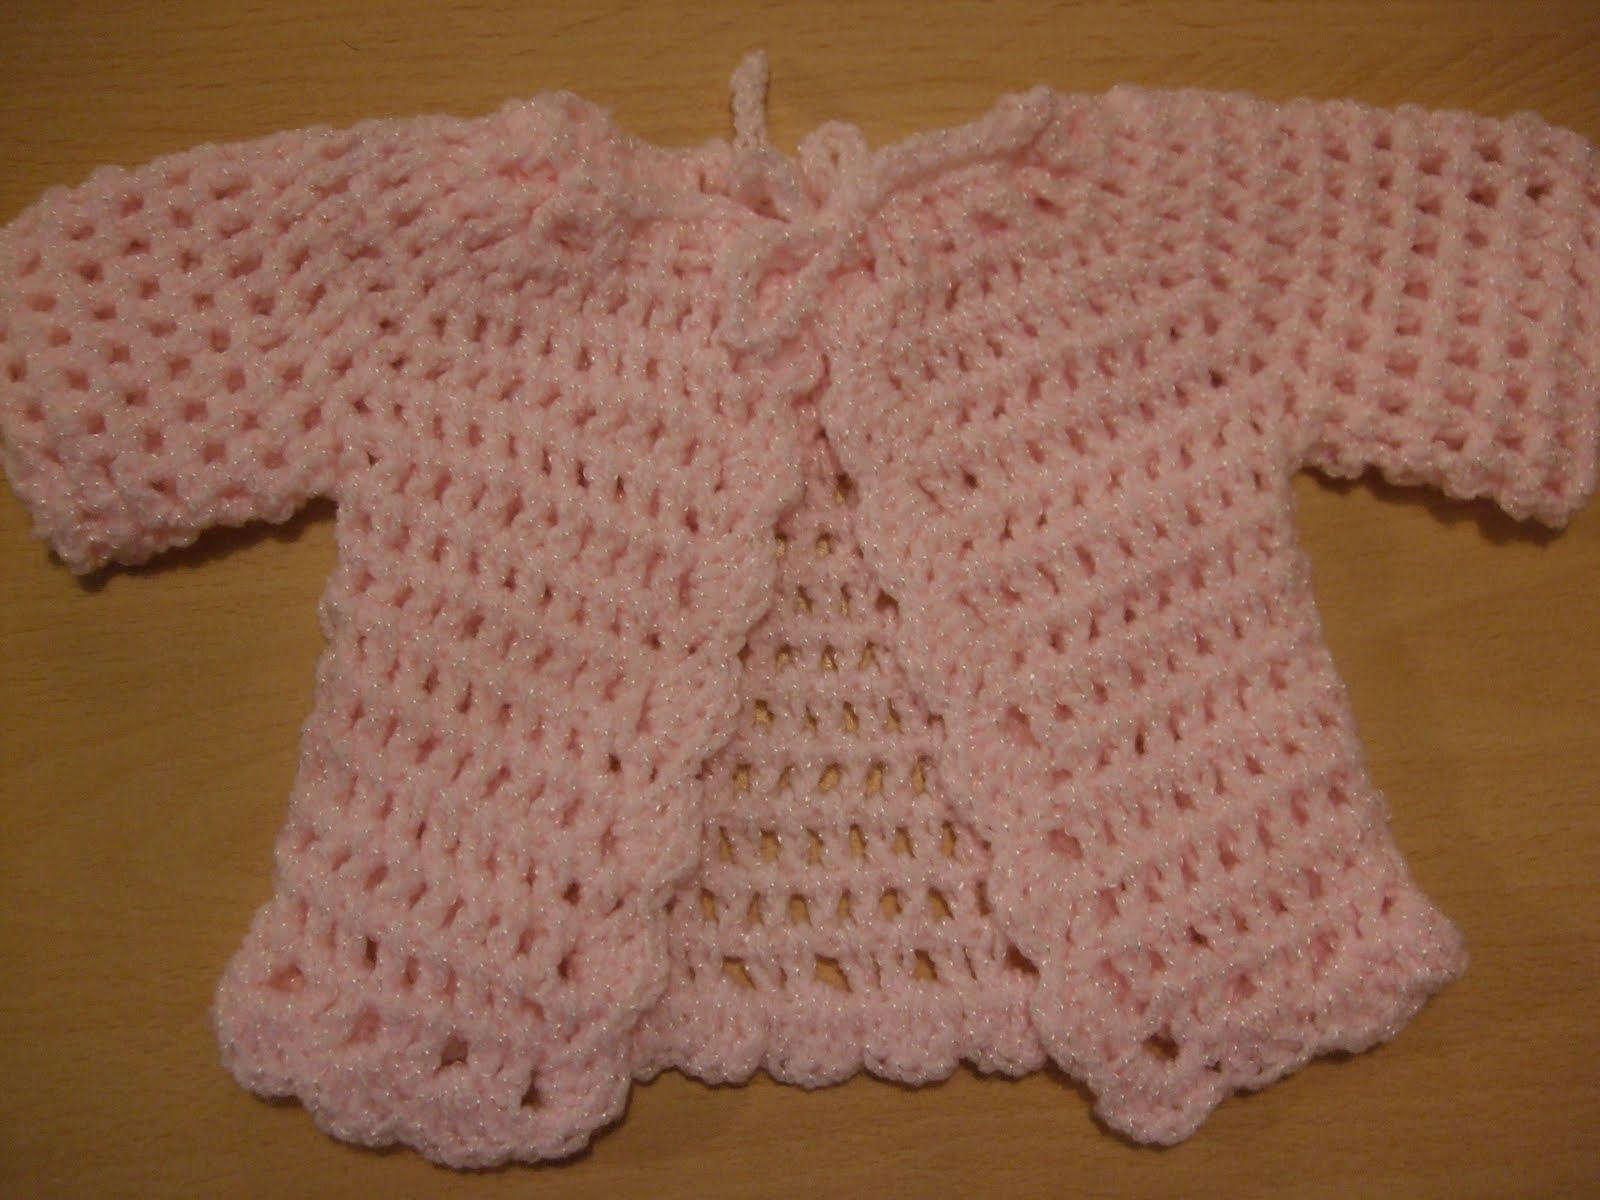 Crocheting Baby Stuff : Channelles Crochet creations: Project Carol Crochet Baby Clothes